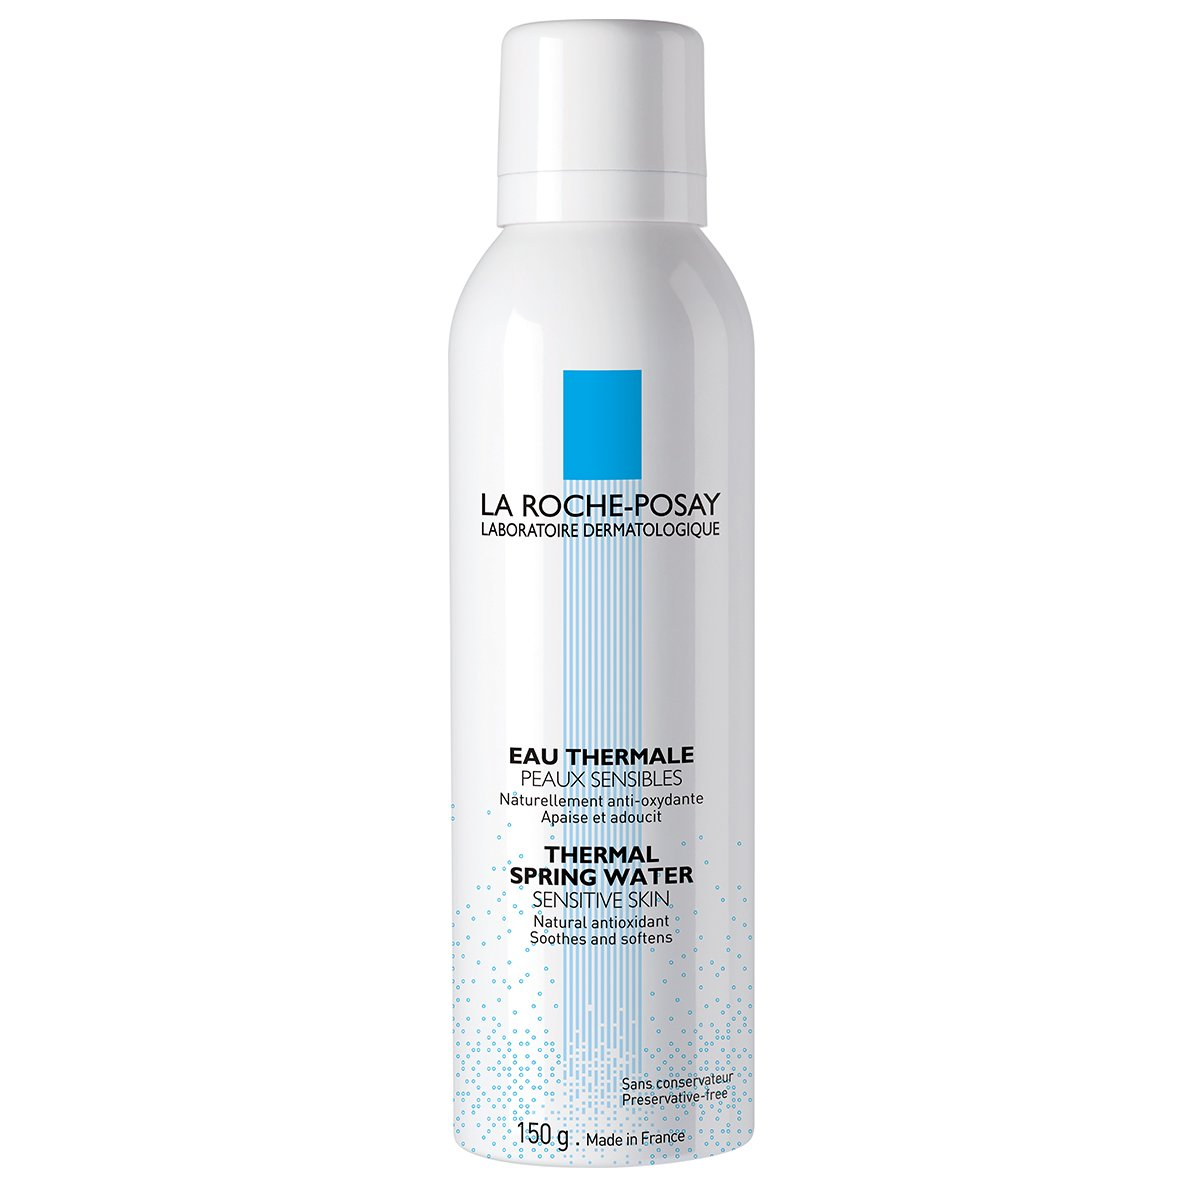 La Roche-Posay Thermal Spring Water Soothing Face Mist Spray for Sensitive Skin with Antioxidants